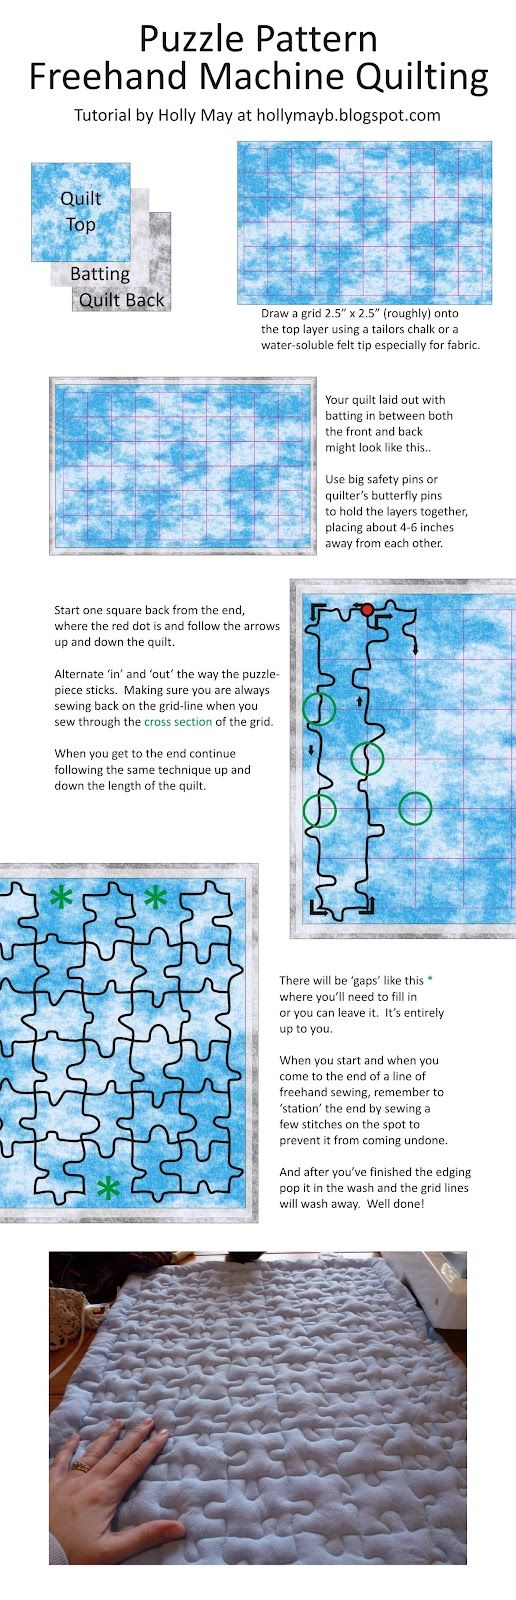 Puzzle Quilting~ What a cool way to quilt! Use this technique on your next project with fabric from the Fabric Shack at http://www.fabricshack.com/cgi-bin/Store/store.cgi